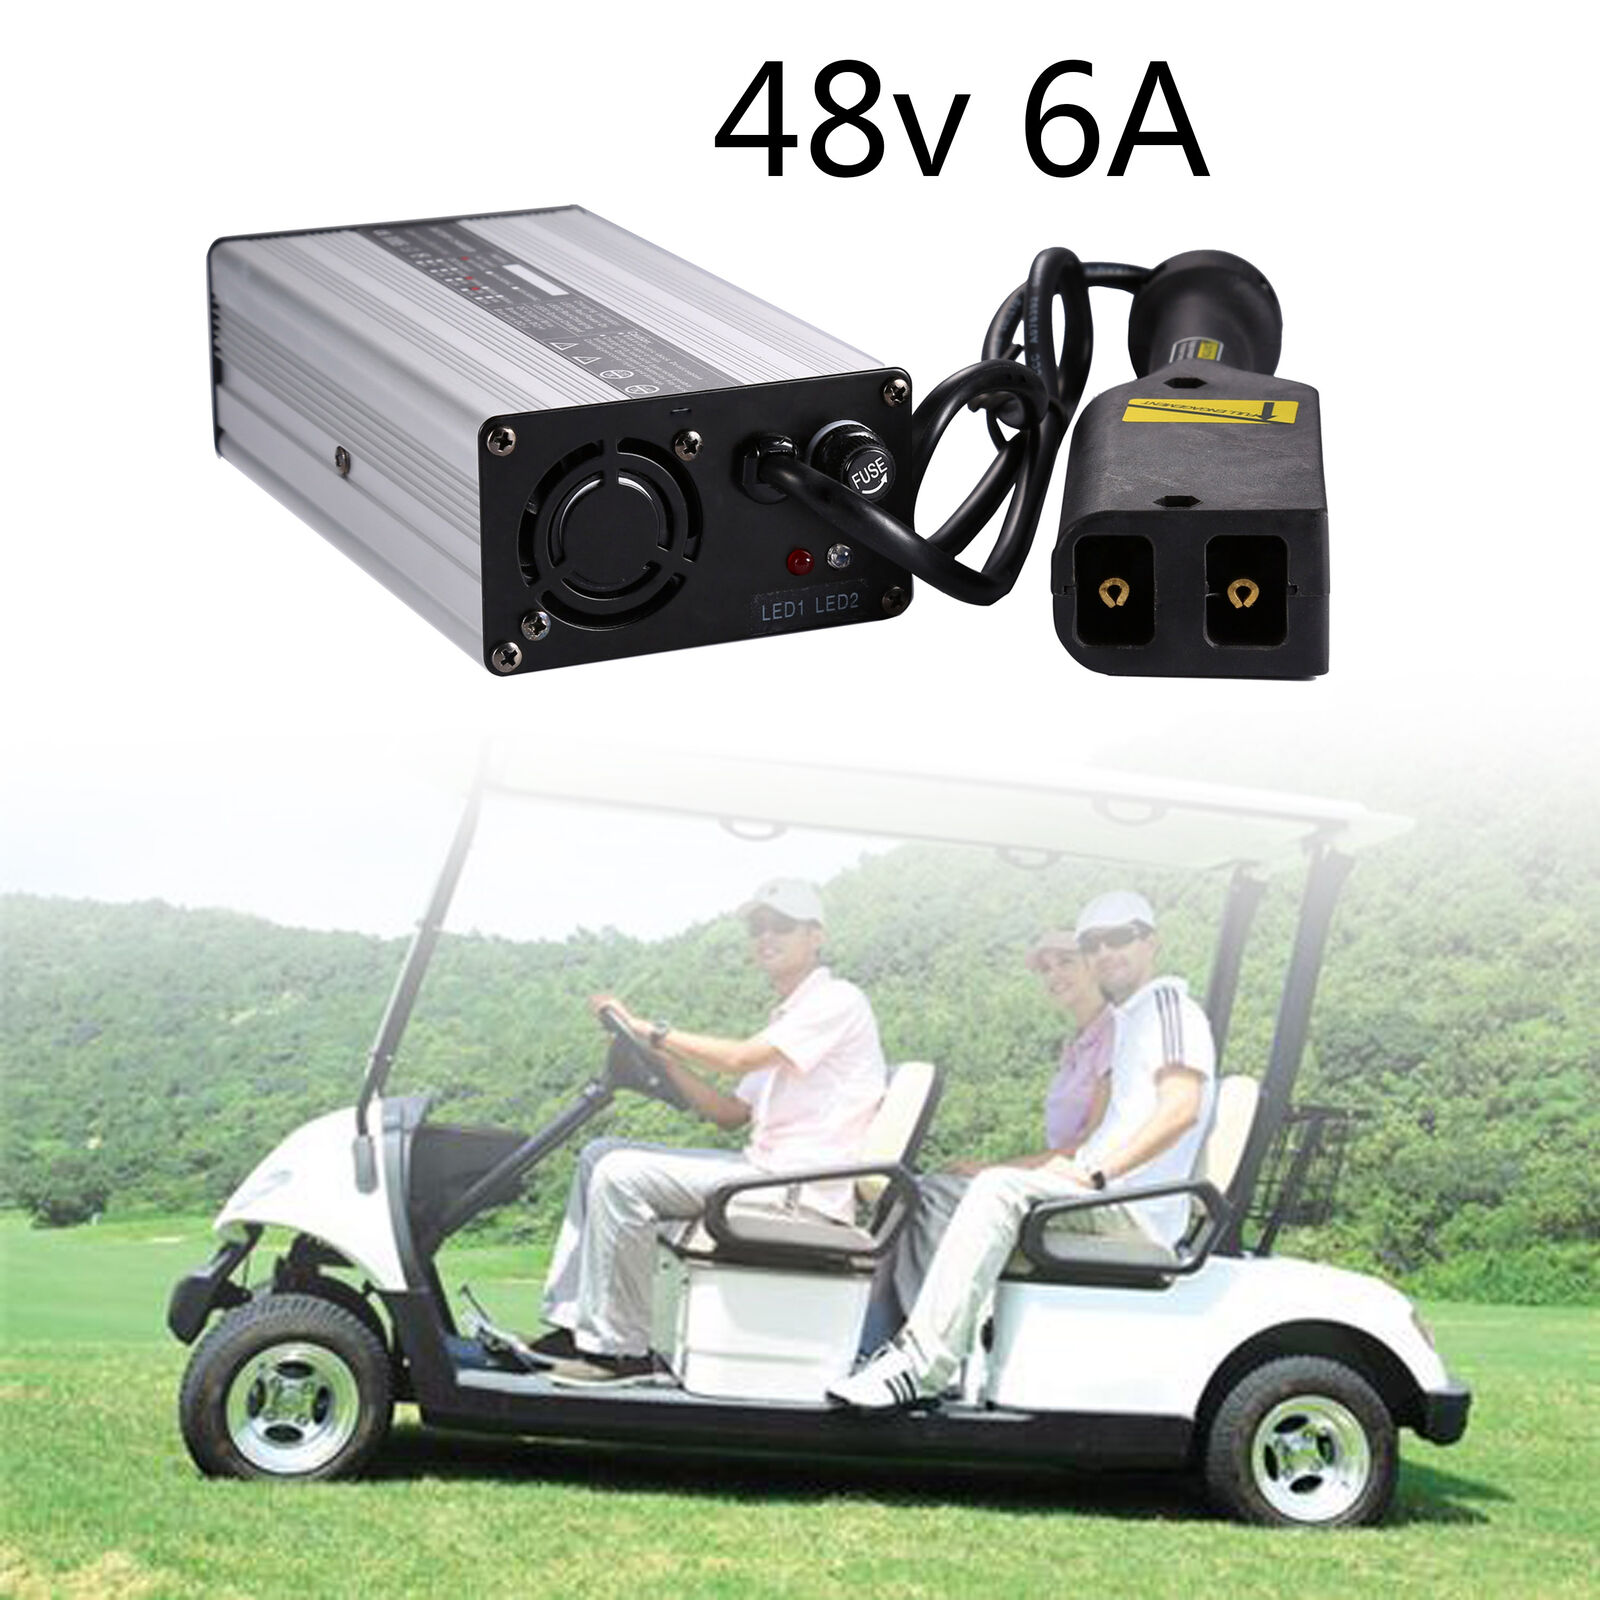 48V 6A US D Style Battery Charger Connector Plug For Golf Cart Club Car